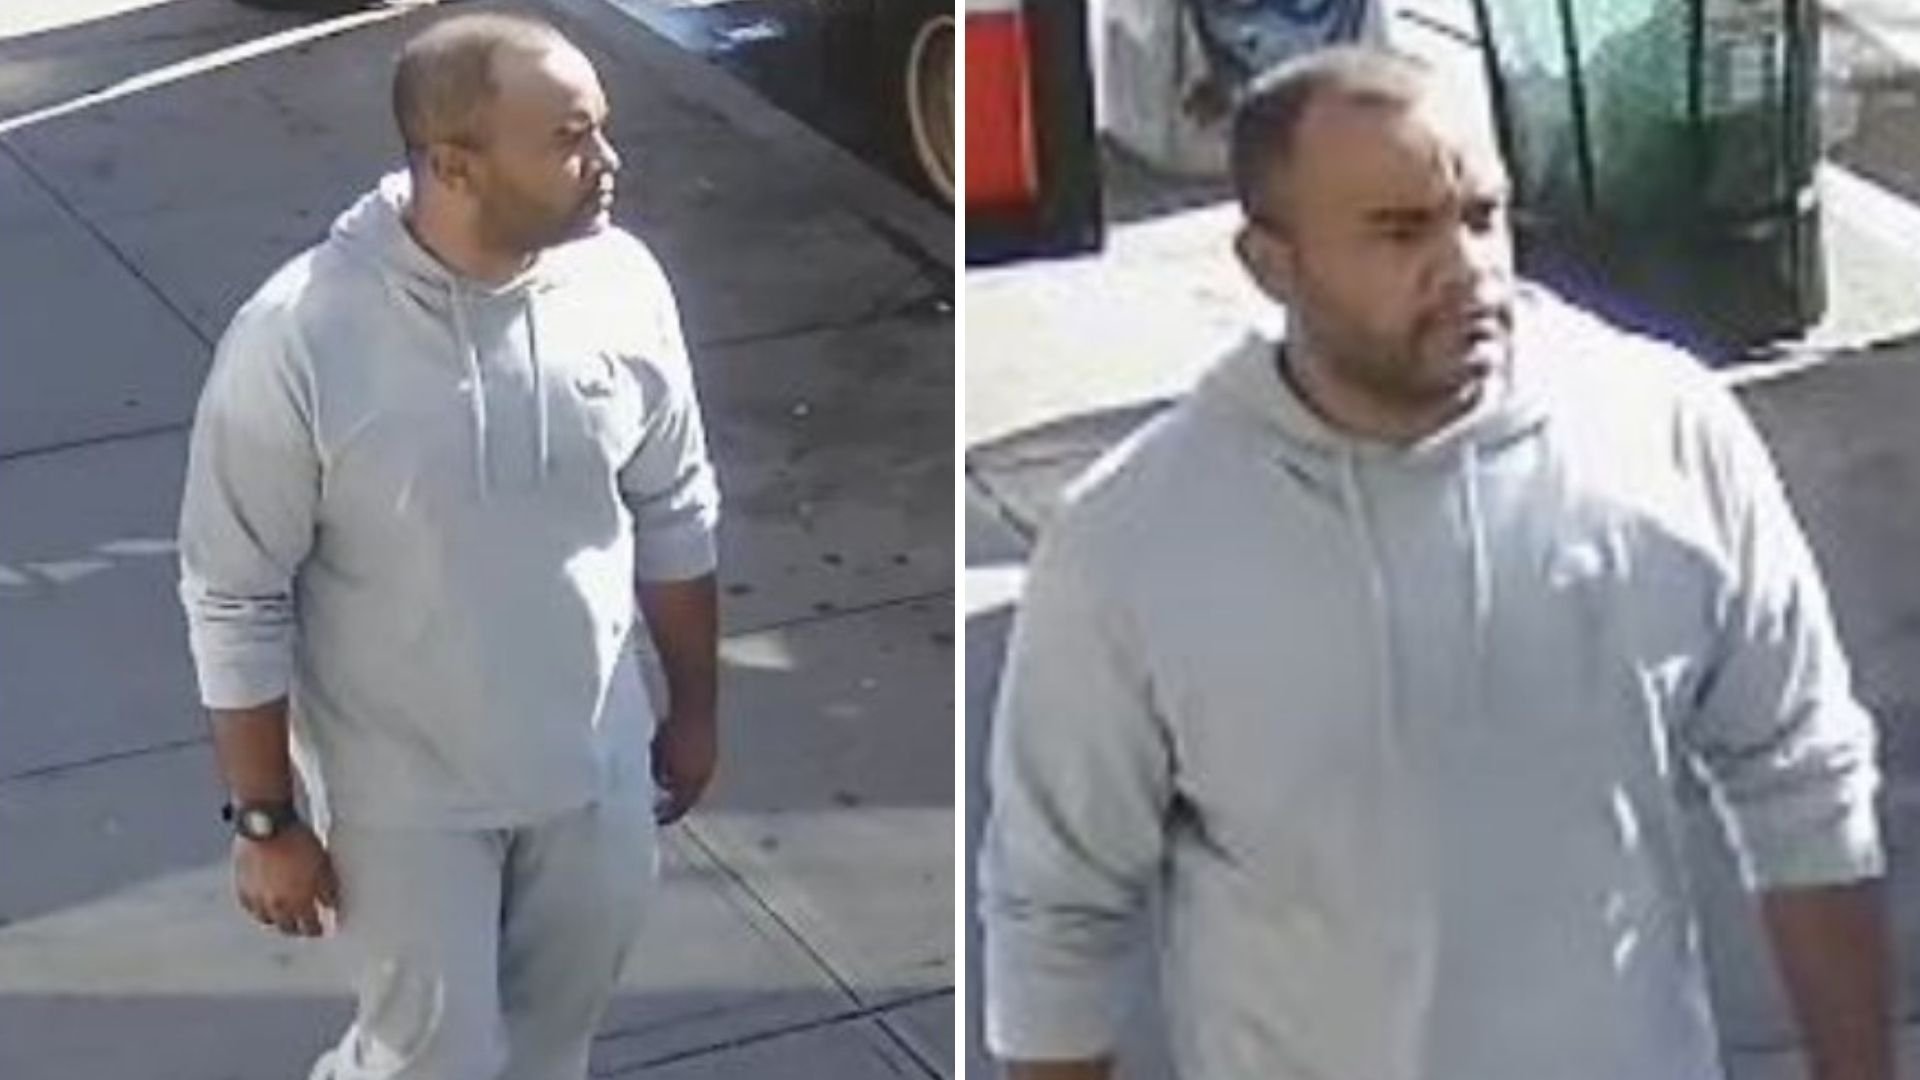 70-year-old man punched in Greenwich Village attack